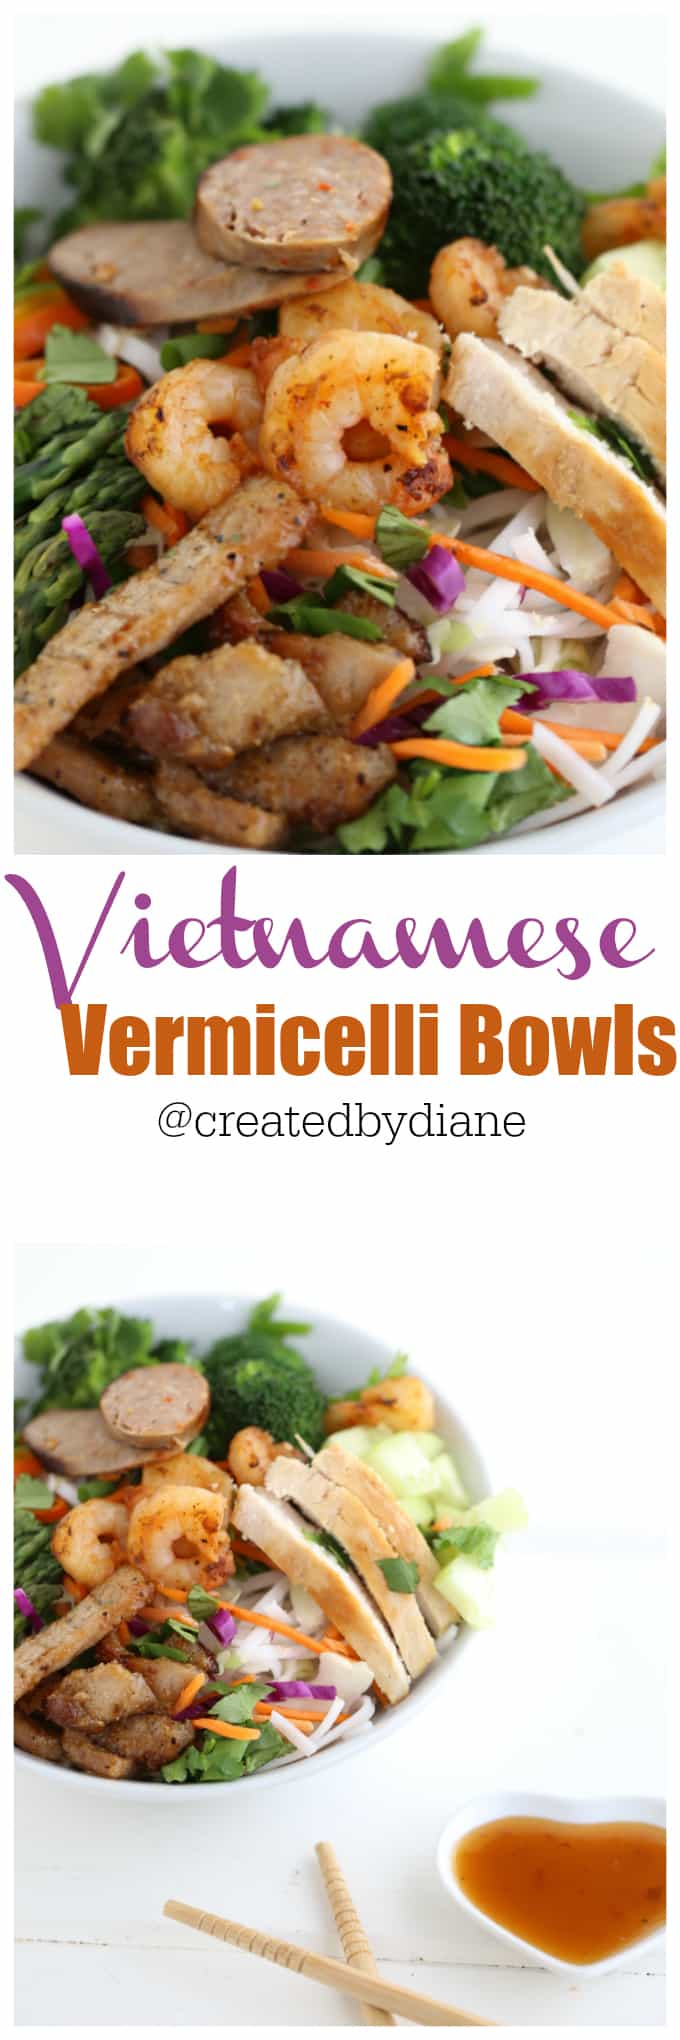 Vietnamese Vermicelli Bowls from @createdbydiane